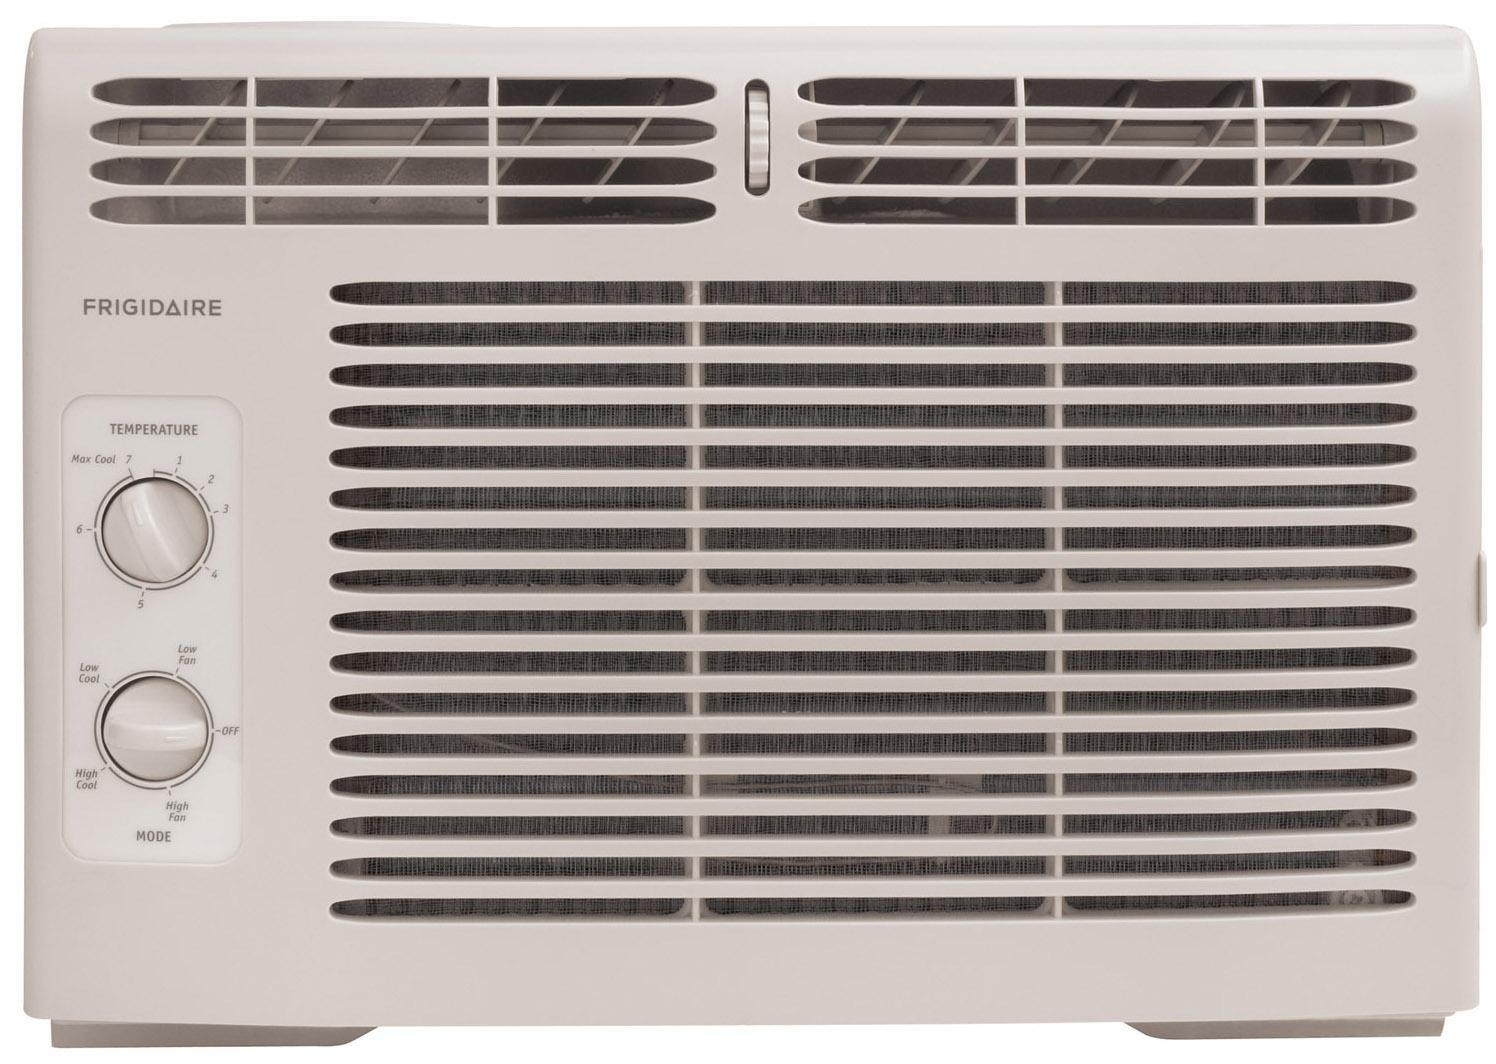 Model: FRA052XT7 Style: 5 000 BTU Window Room Air Conditioner #736158